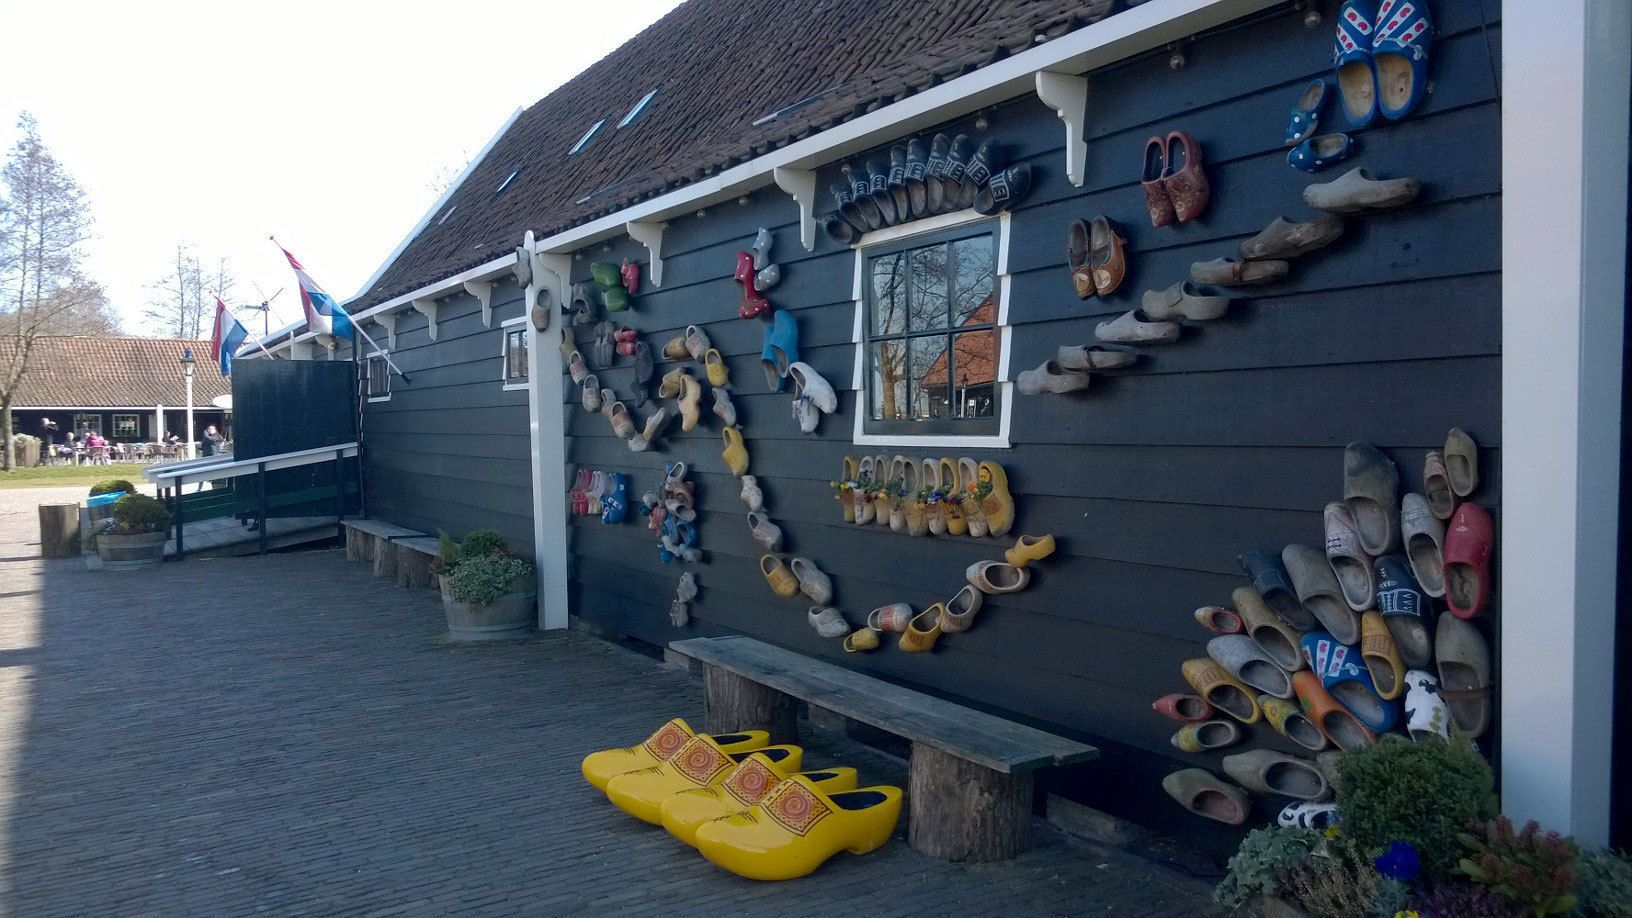 Building decorated with clogs in Zaanse Schans